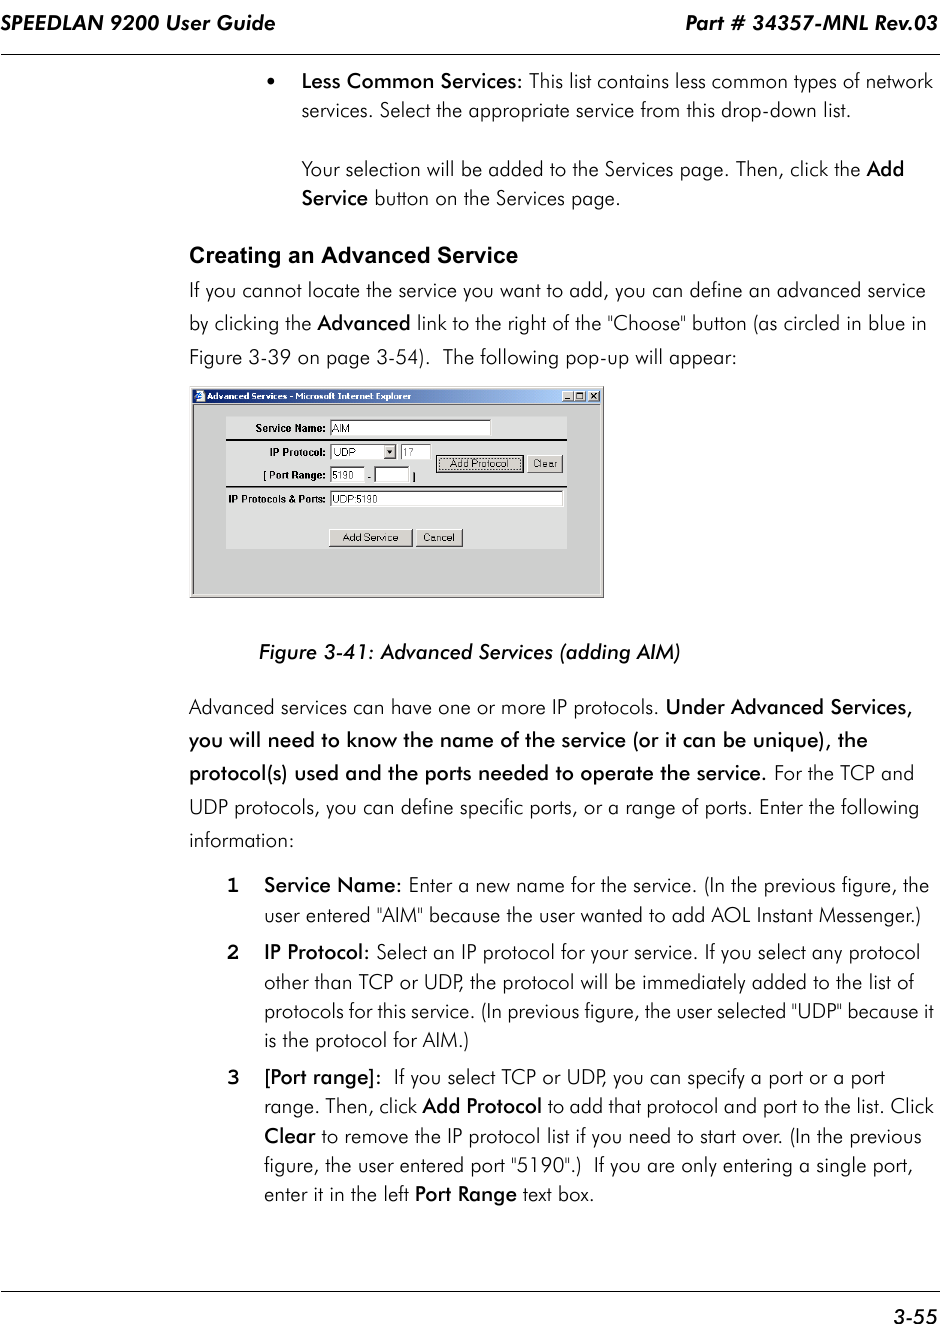 """SPEEDLAN 9200 User Guide                                                                    Part # 34357-MNL Rev.03      3-55                                                                                                                                                              •Less Common Services: This list contains less common types of network services. Select the appropriate service from this drop-down list. Your selection will be added to the Services page. Then, click the Add Service button on the Services page. Creating an Advanced ServiceIf you cannot locate the service you want to add, you can define an advanced service by clicking the Advanced link to the right of the """"Choose"""" button (as circled in blue in  Figure 3-39 on page 3-54).  The following pop-up will appear:Figure 3-41: Advanced Services (adding AIM)Advanced services can have one or more IP protocols. Under Advanced Services, you will need to know the name of the service (or it can be unique), the protocol(s) used and the ports needed to operate the service. For the TCP and UDP protocols, you can define specific ports, or a range of ports. Enter the following information:1Service Name: Enter a new name for the service. (In the previous figure, the user entered """"AIM"""" because the user wanted to add AOL Instant Messenger.)2IP Protocol: Select an IP protocol for your service. If you select any protocol other than TCP or UDP, the protocol will be immediately added to the list of protocols for this service. (In previous figure, the user selected """"UDP"""" because it is the protocol for AIM.)3[Port range]:  If you select TCP or UDP, you can specify a port or a port range. Then, click Add Protocol to add that protocol and port to the list. Click Clear to remove the IP protocol list if you need to start over. (In the previous figure, the user entered port """"5190"""".)  If you are only entering a single port, enter it in the left Port Range text box."""